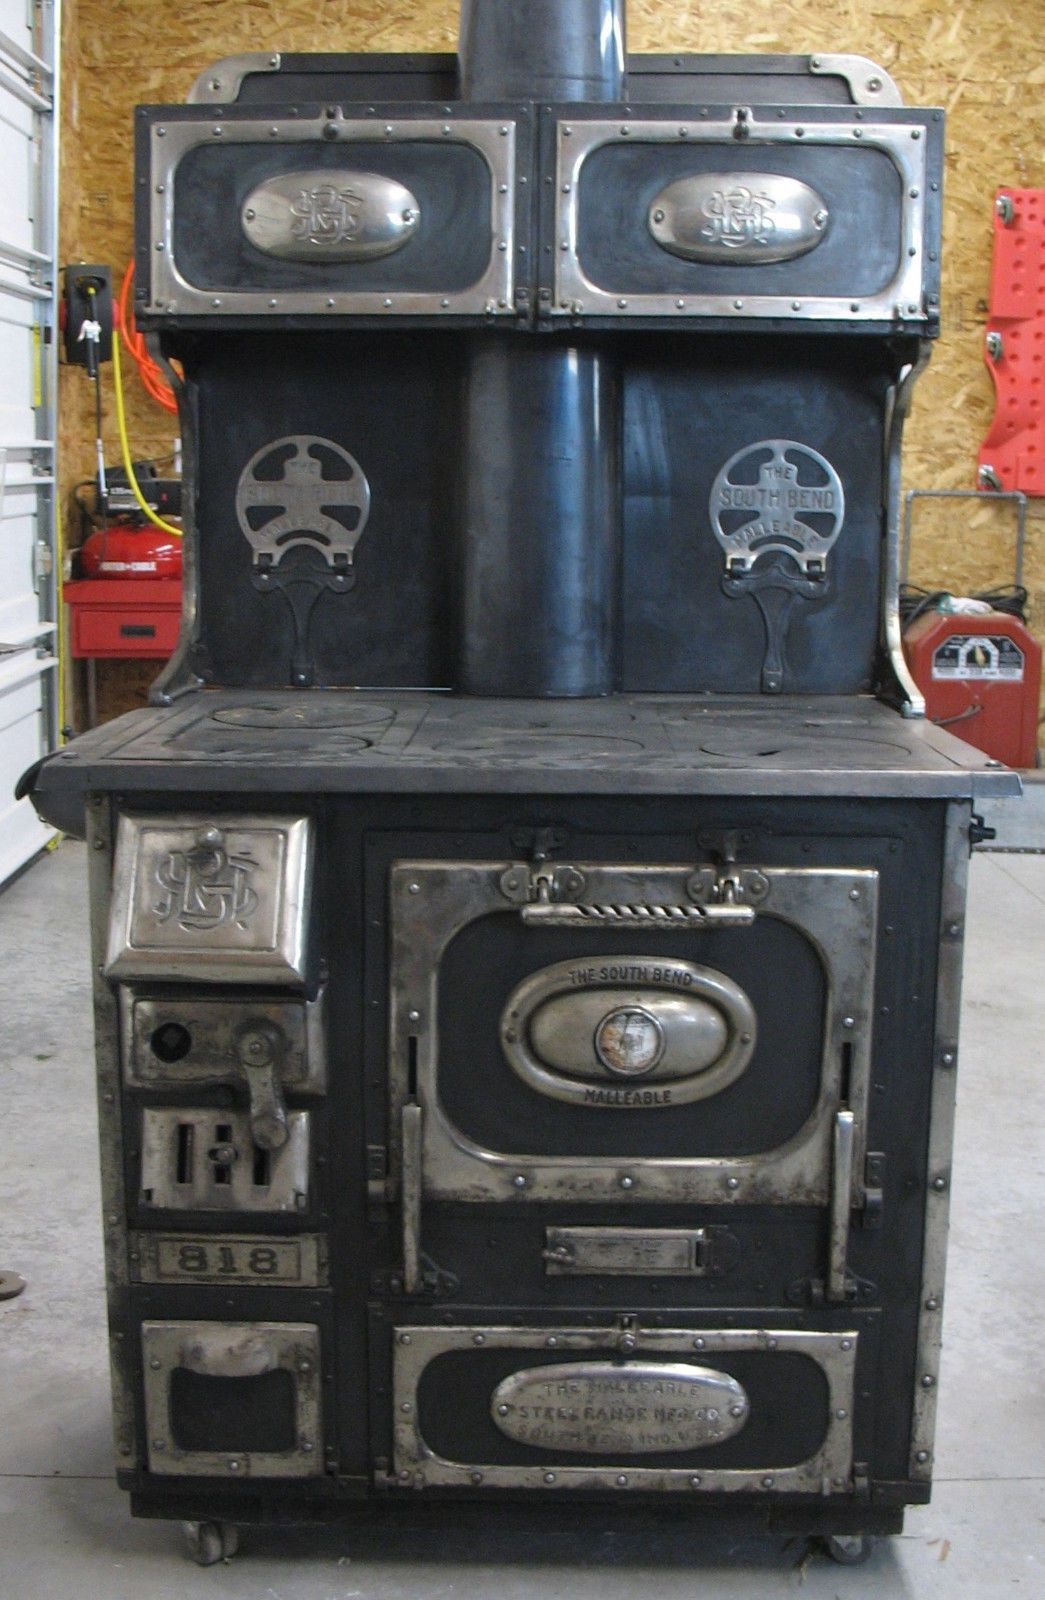 Old Antique South Bend Malleable Wood Cook Stove Black Model